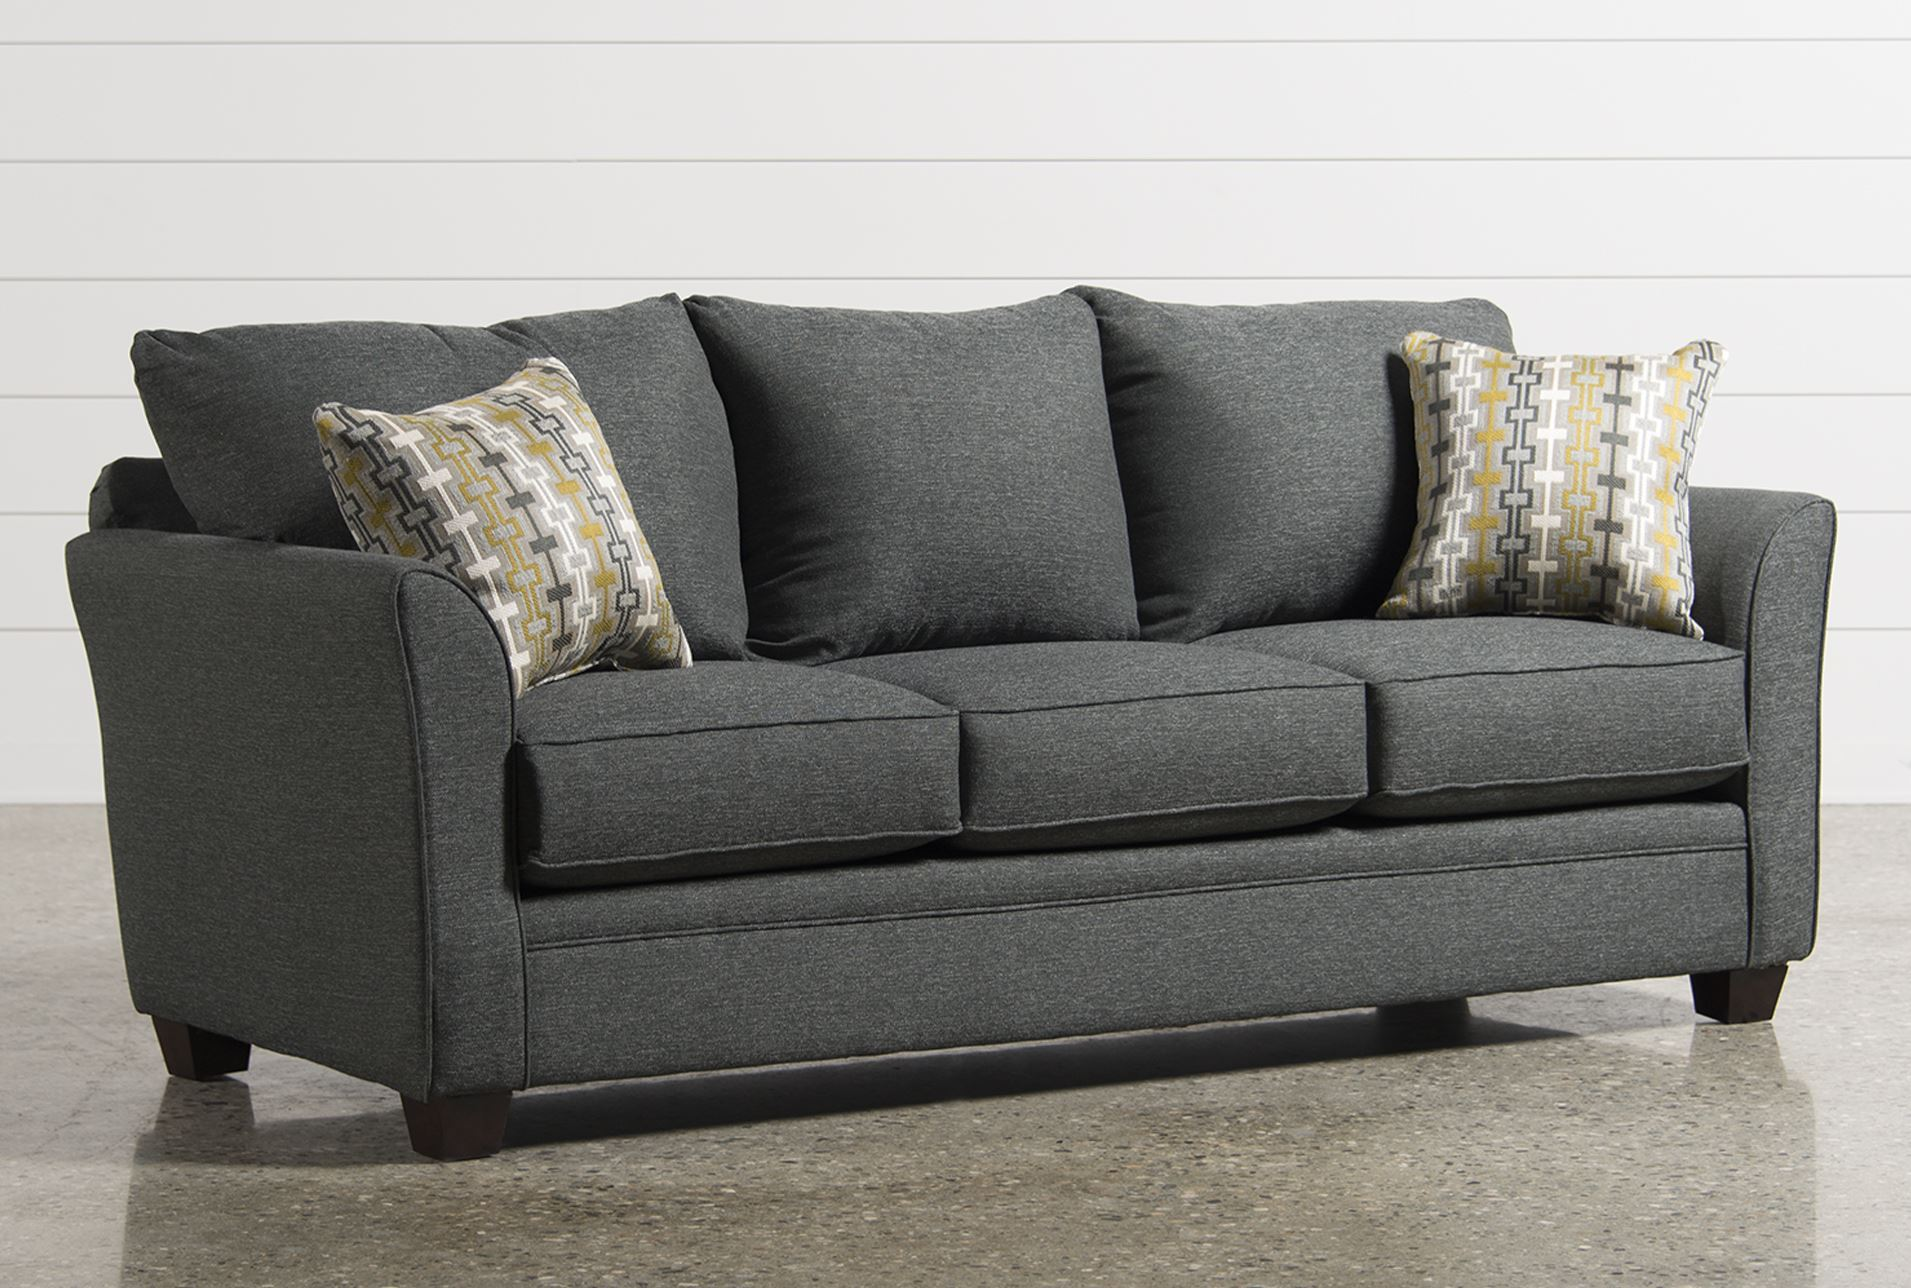 The best cushion filling for your sofa The Million Dollar Portfolio